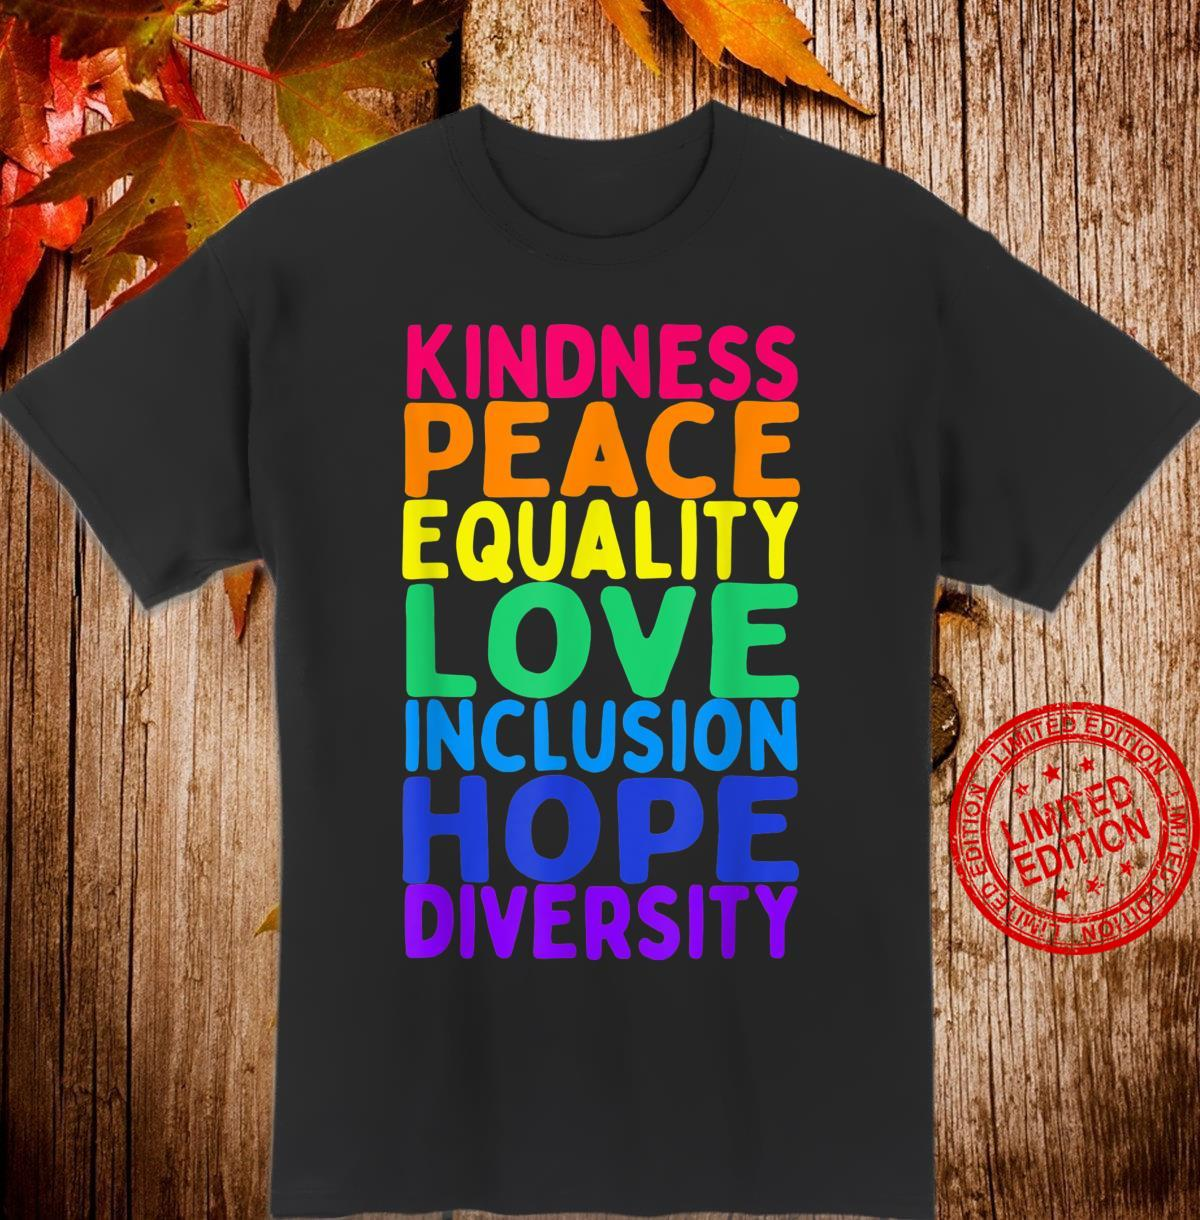 Kindness Peace Equality Inclusion Diversity Human Rights Shirt